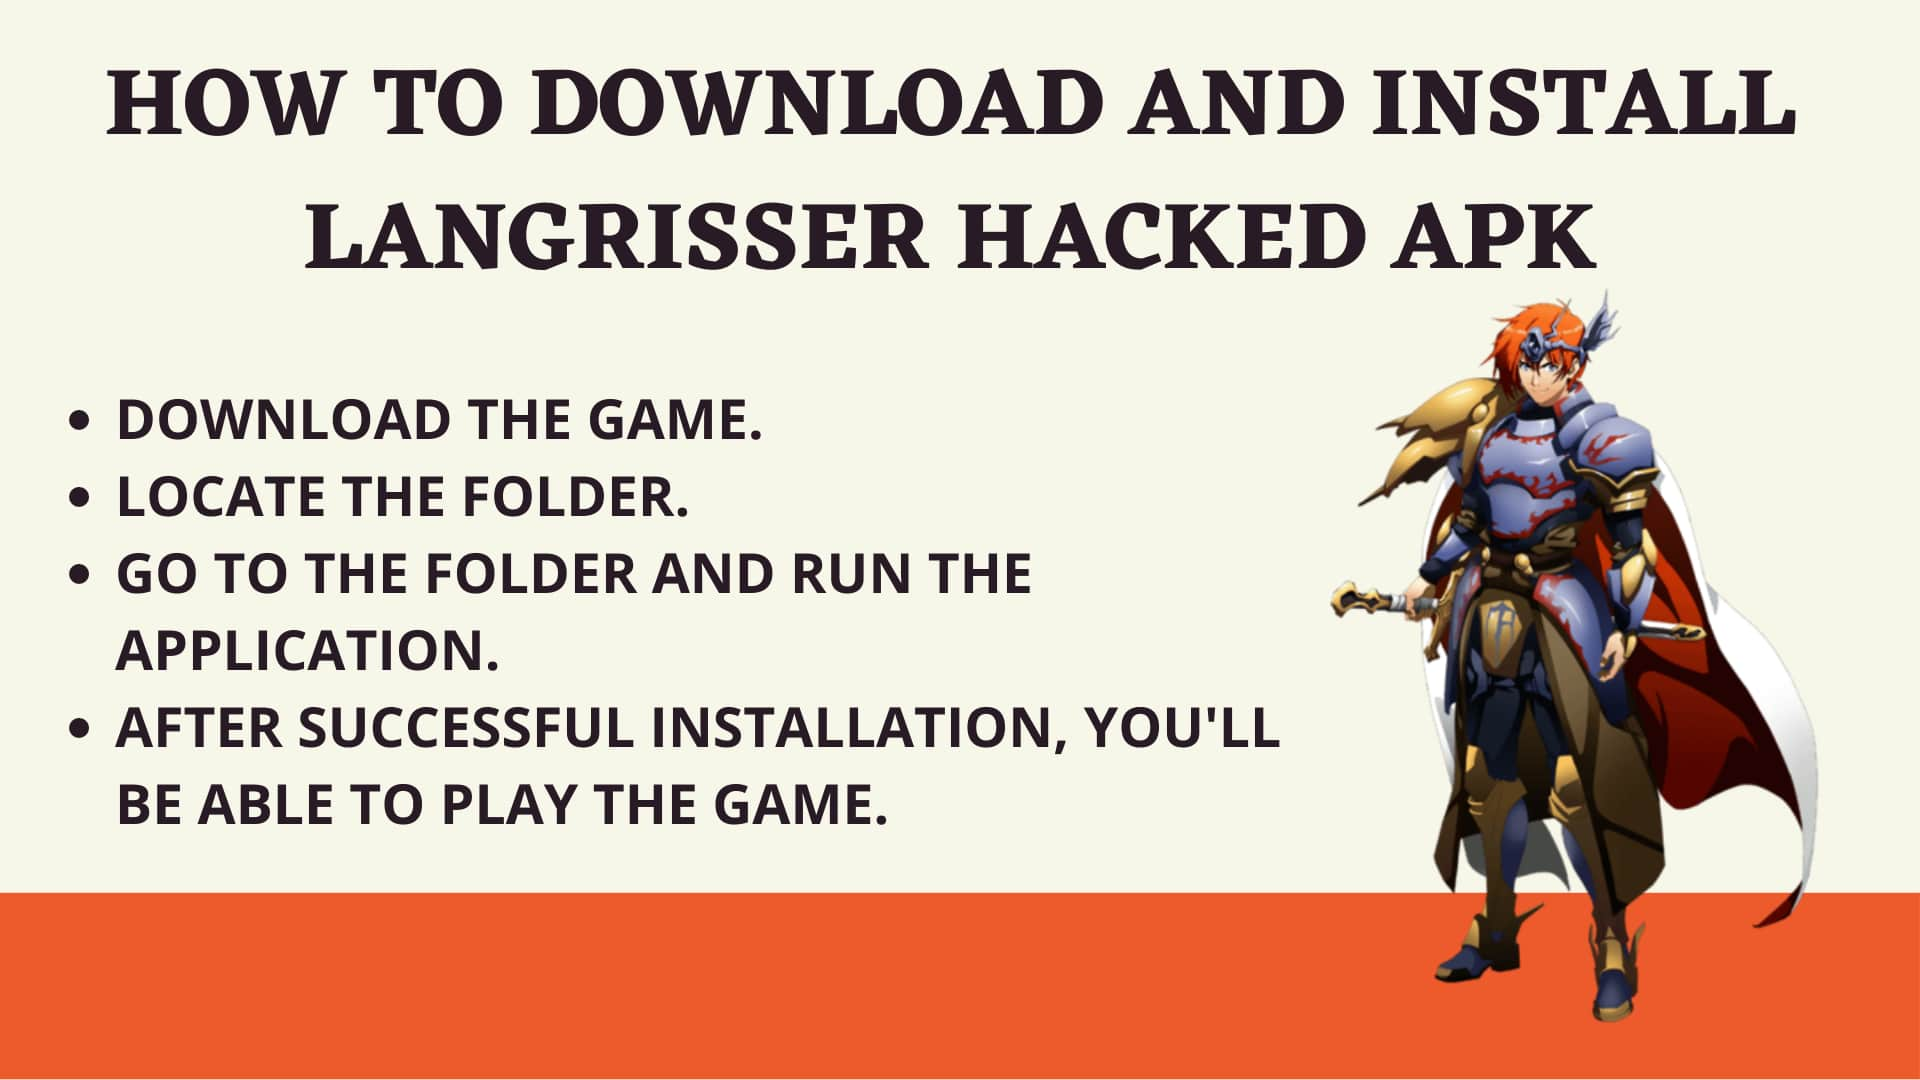 How to download and install Langrisser Hacked apk